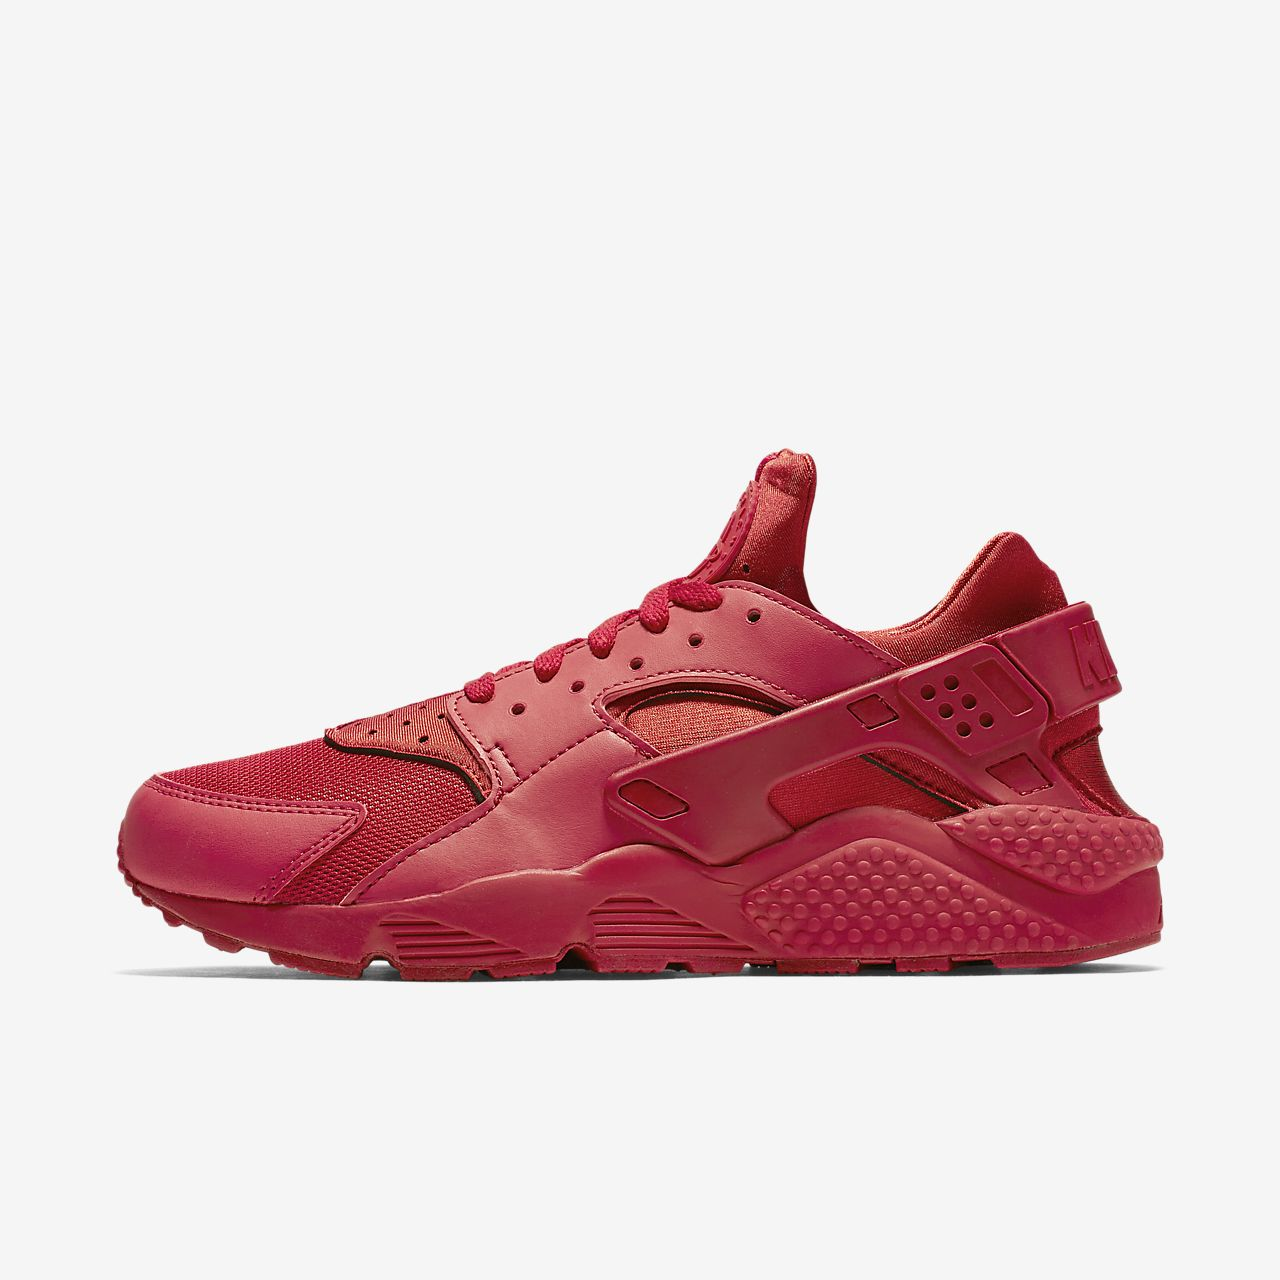 a68f37f30 Nike Air Huarache Men s Shoe. Nike.com